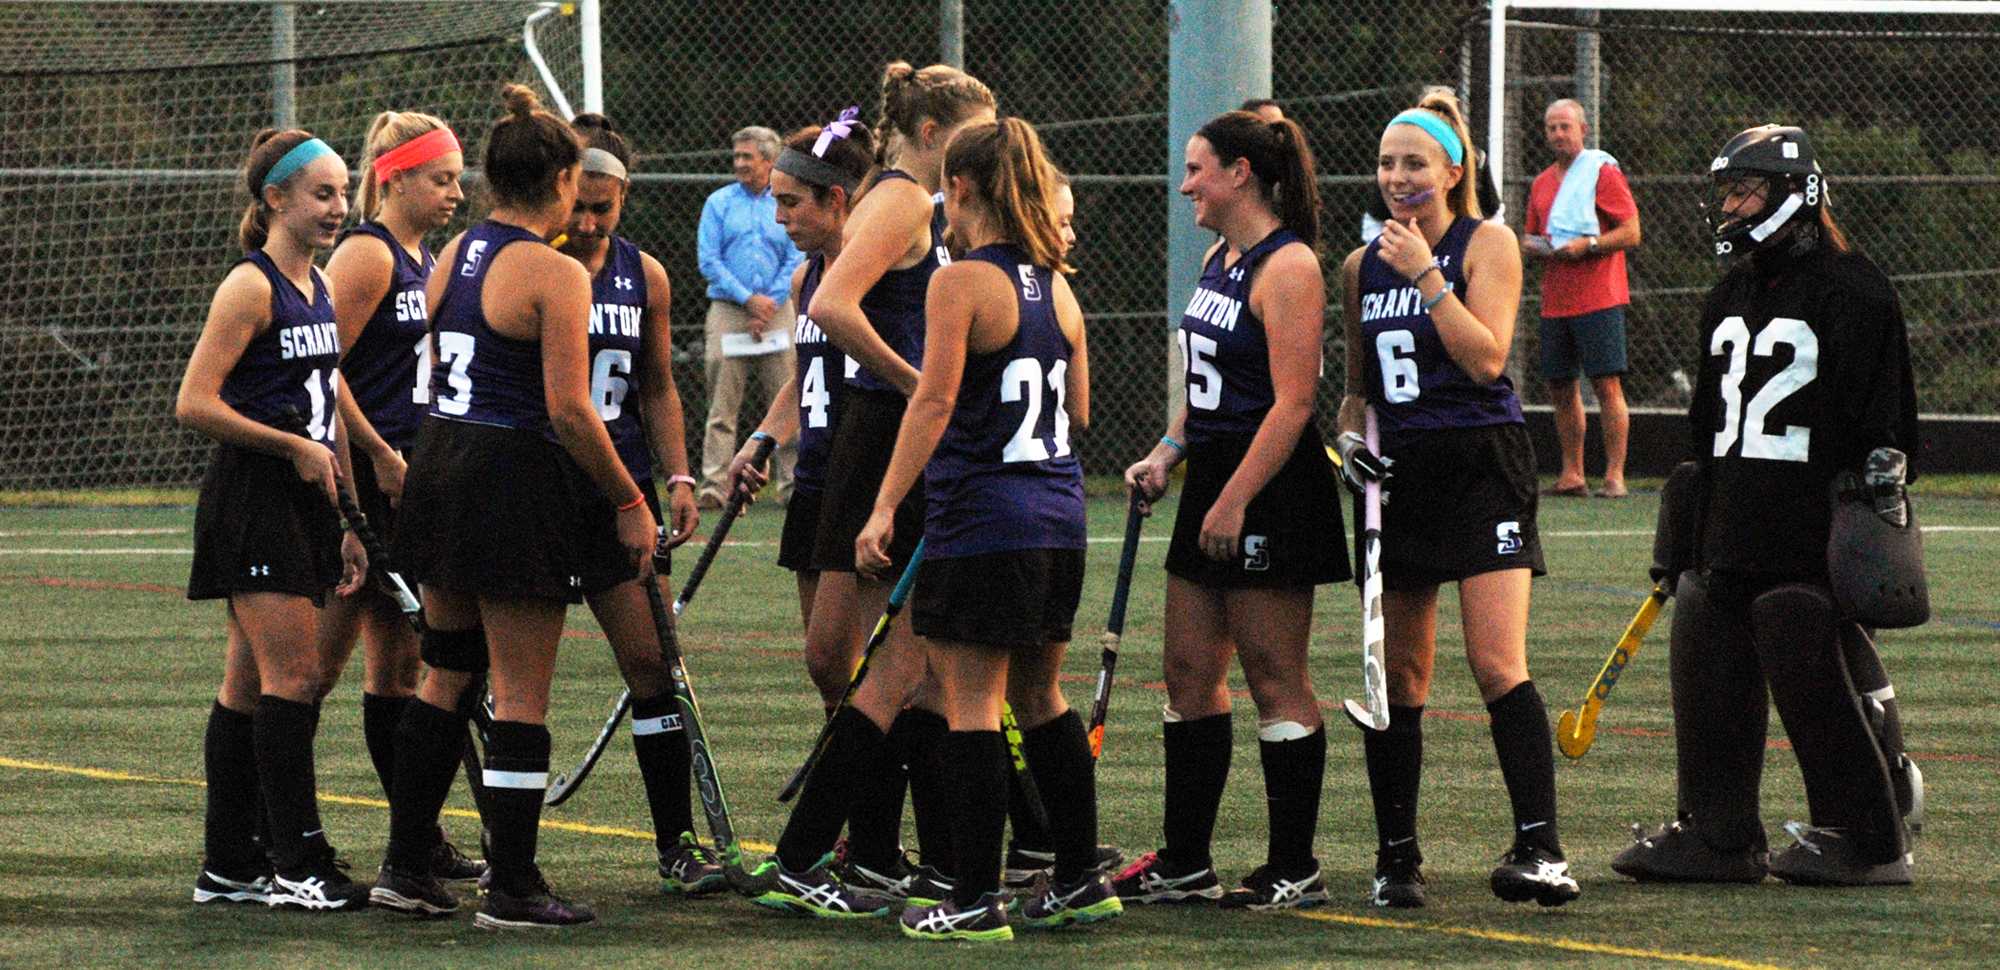 The second-seeded University of Scranton field hockey team will host their first home Landmark Conference playoff match on Wednesday night vs. Juniata.